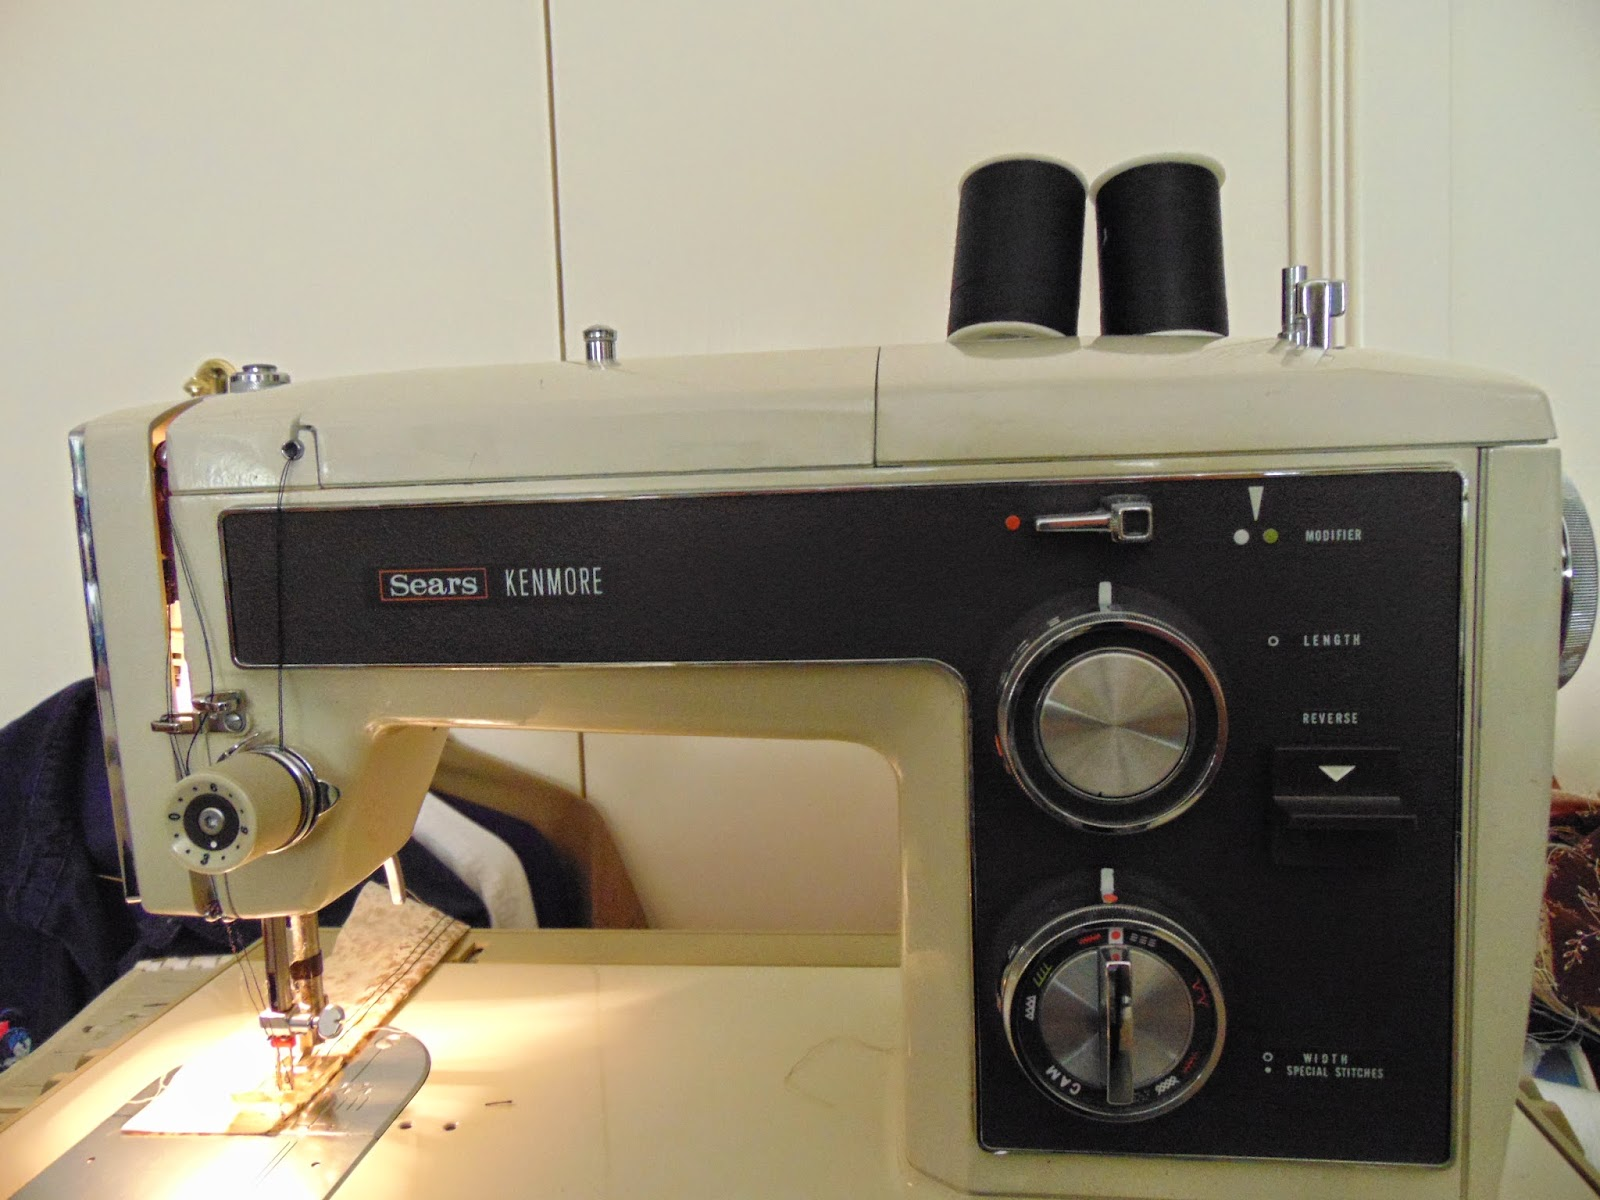 Kenmore Sears 1974 sewing machine with double needle and multi-purpose foot